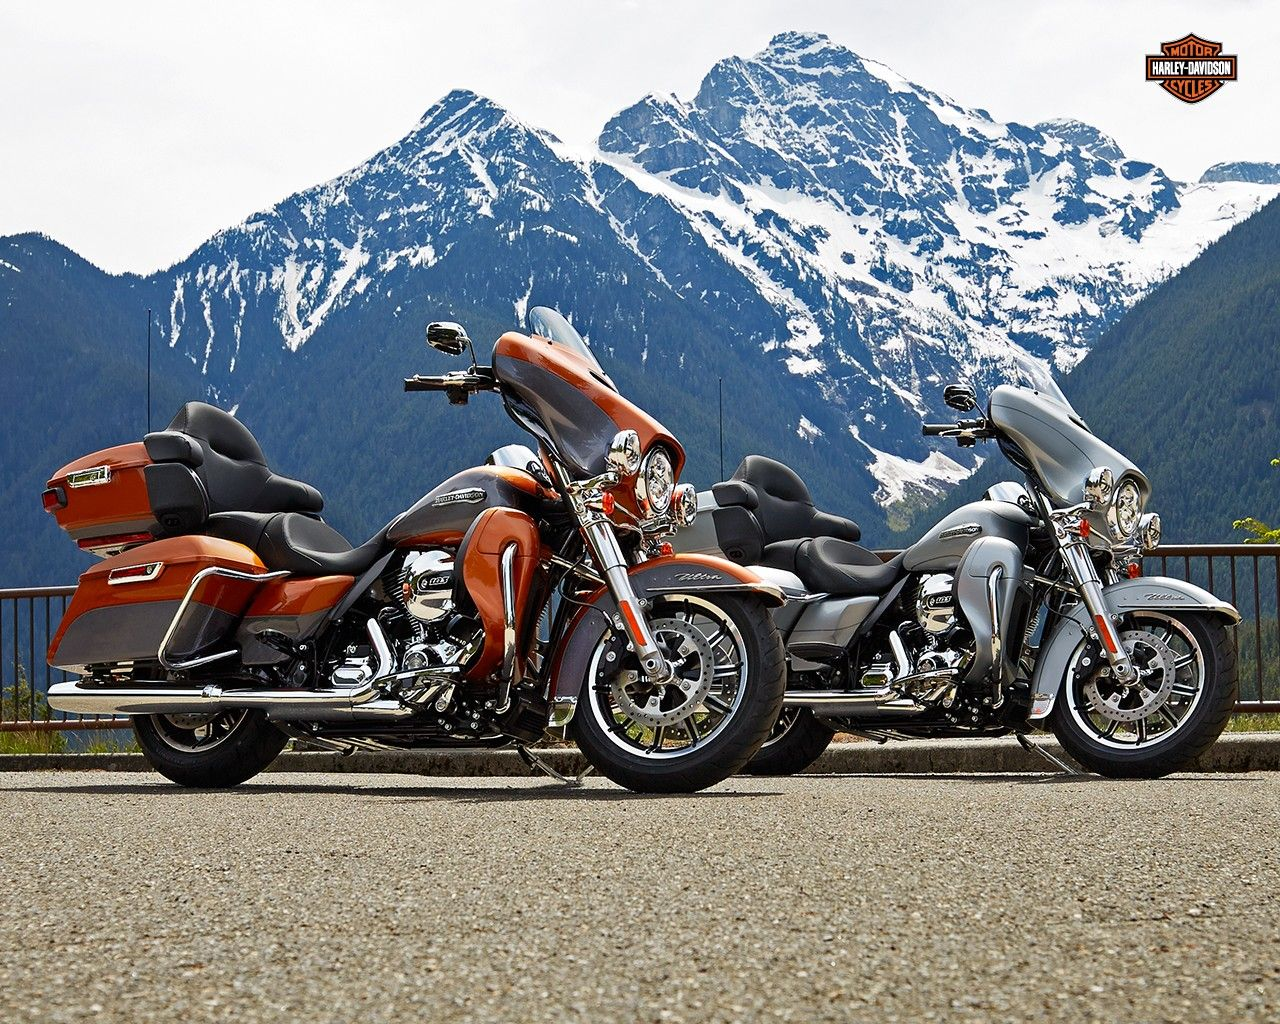 1280x1024 - Harley-Davidson Electra Glide Ultra Classic Wallpapers 29